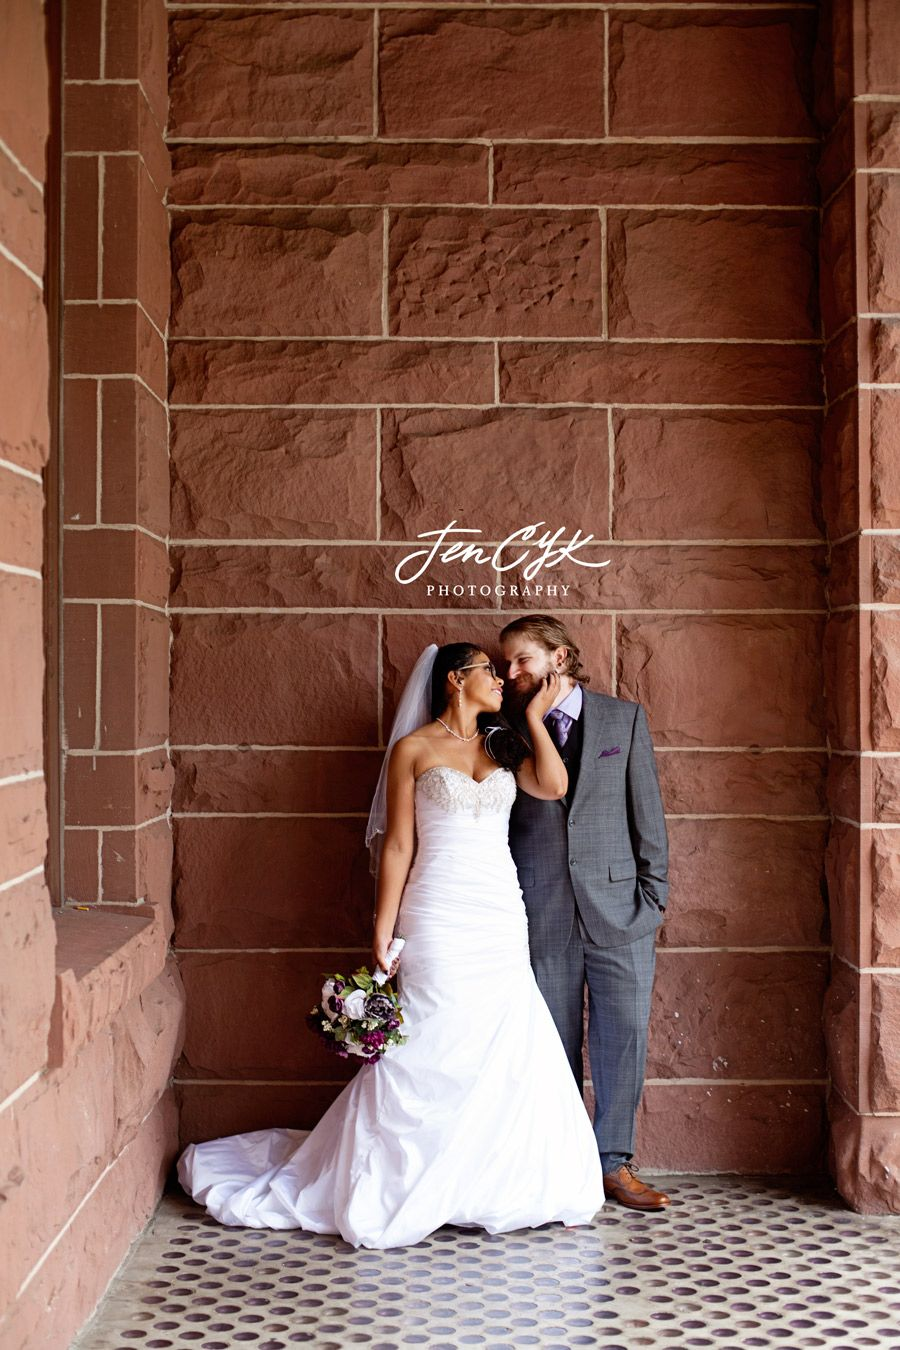 cc1e775c59 An absolutely gorgeous wedding at the Old Orange County Courthouse in Santa  Ana. Courthouse weddings are the best!